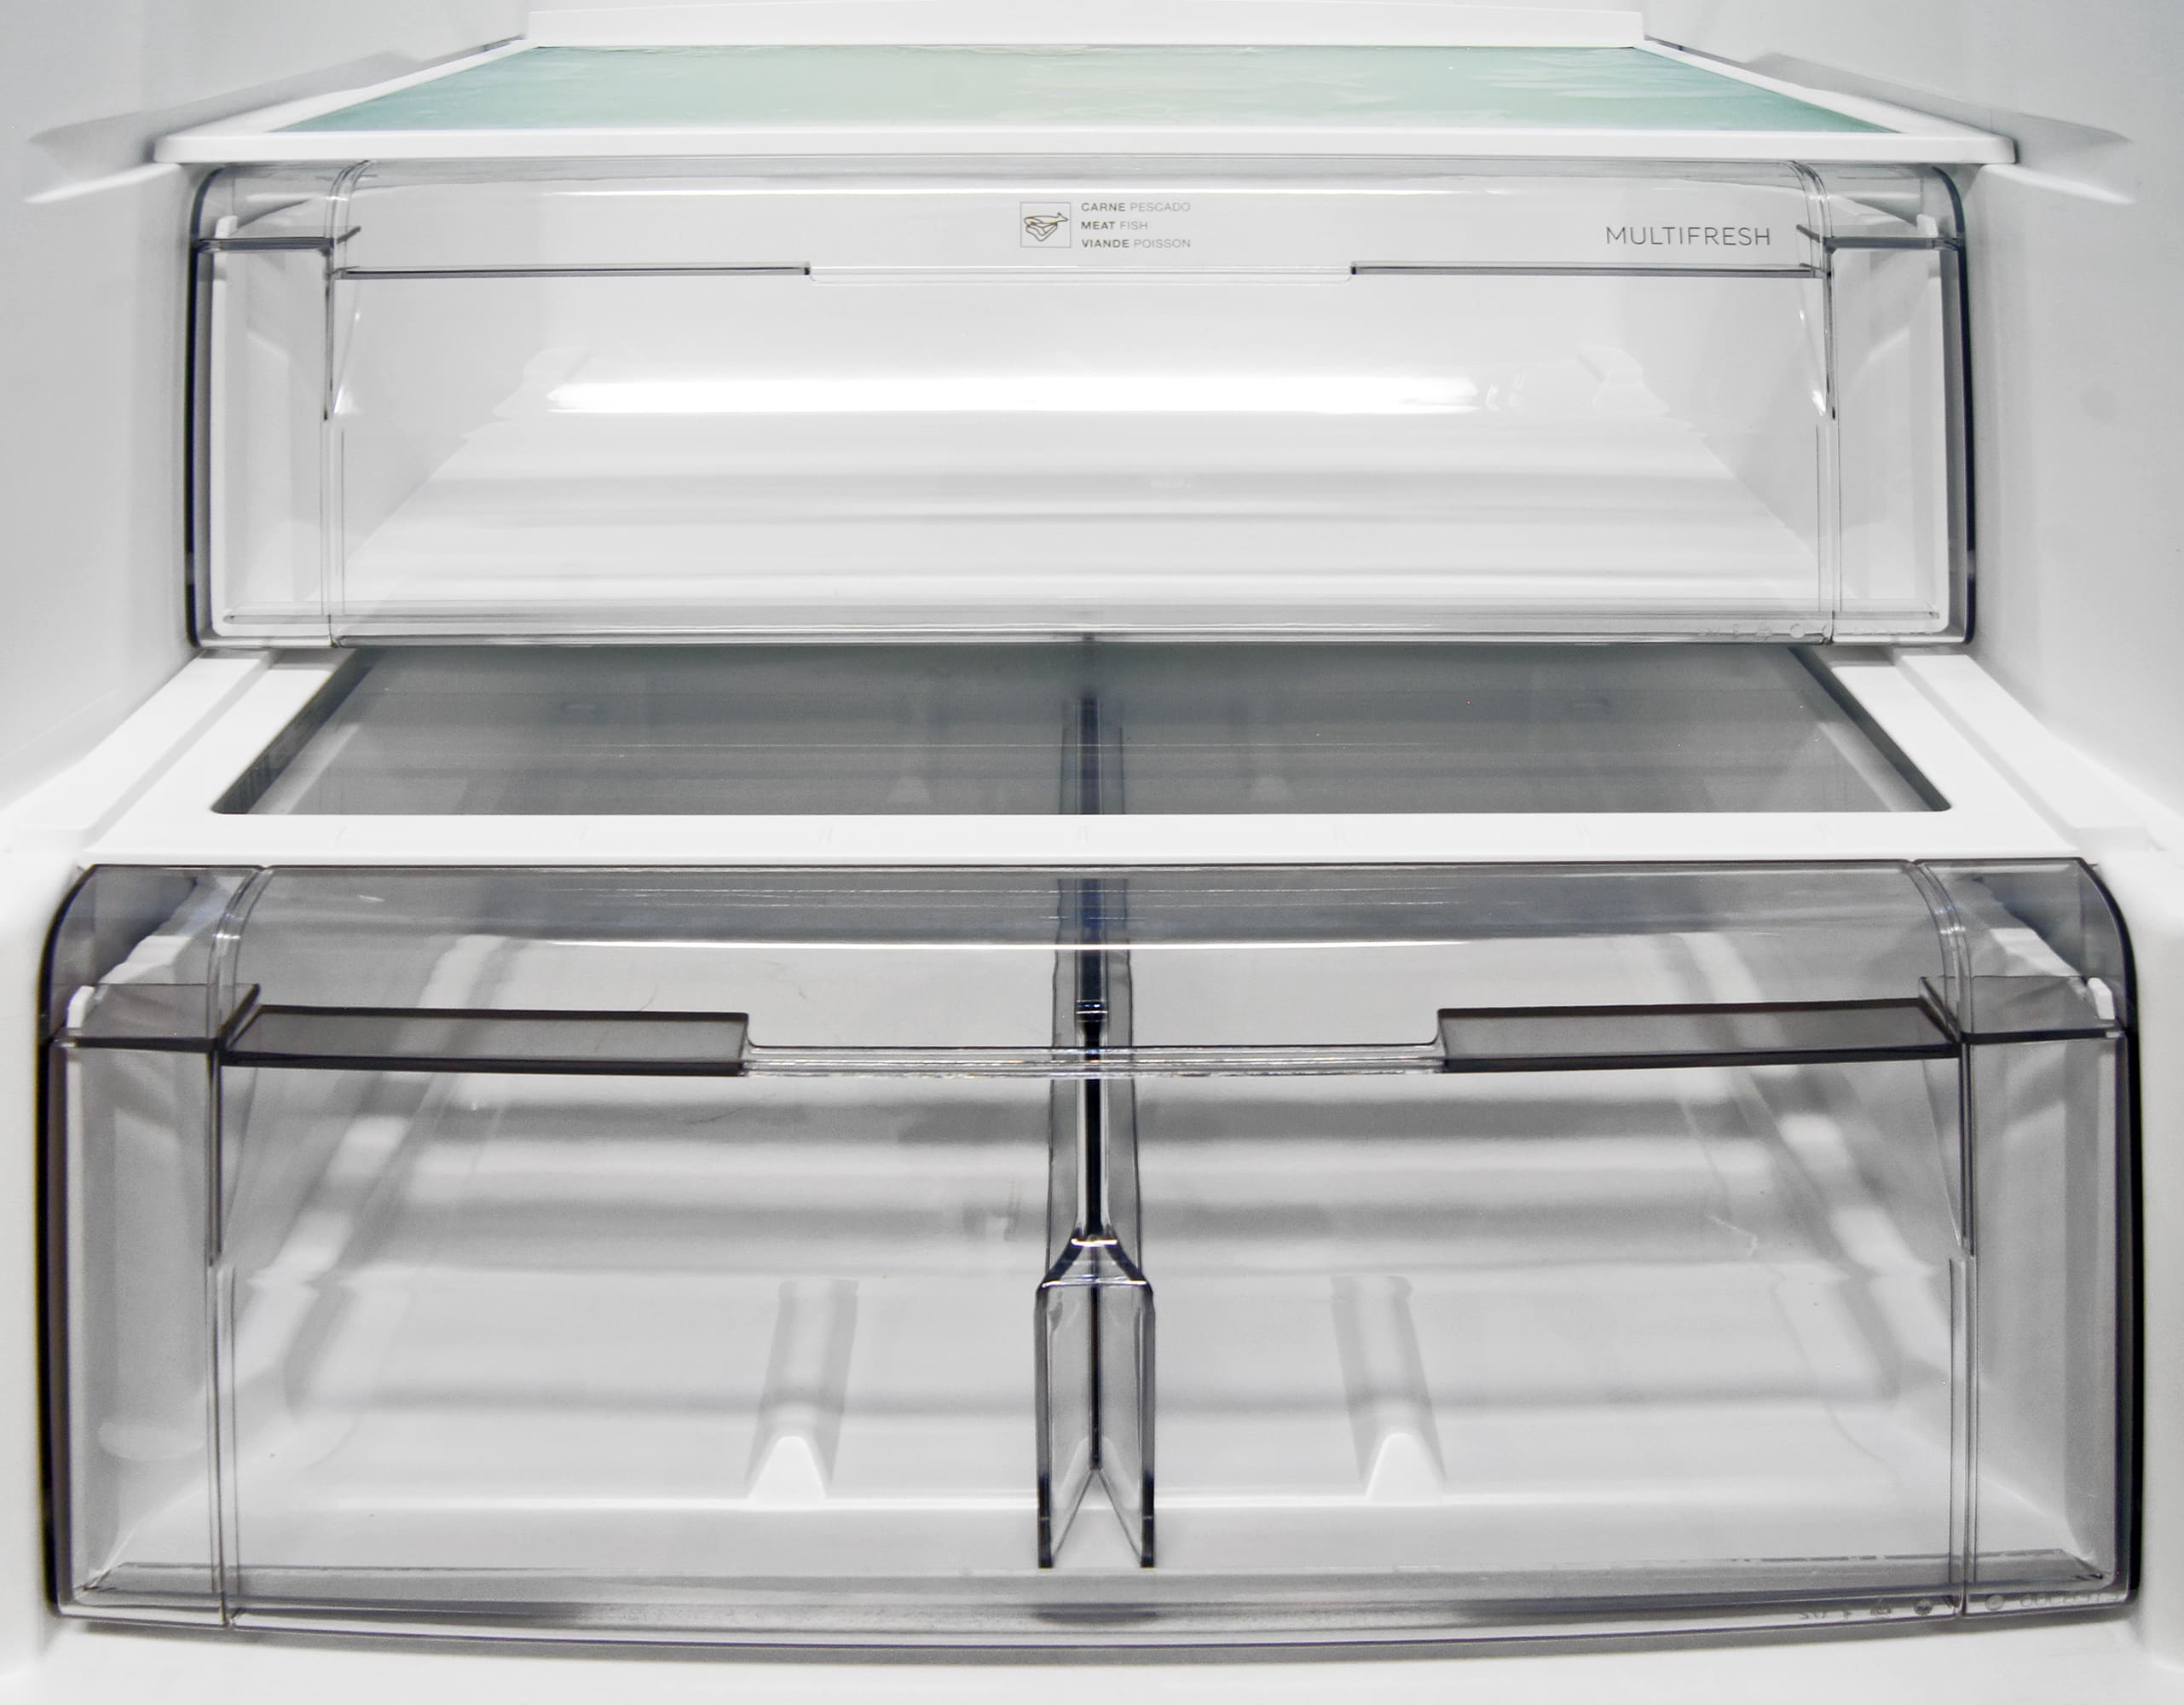 You can't adjust the humidity retention of the Fagor FFJA4845X's crisper, but you can alter the placement of the plastic divider, shown here in the middle. The drawer on top is meant for storing or defrosting meat and fish.